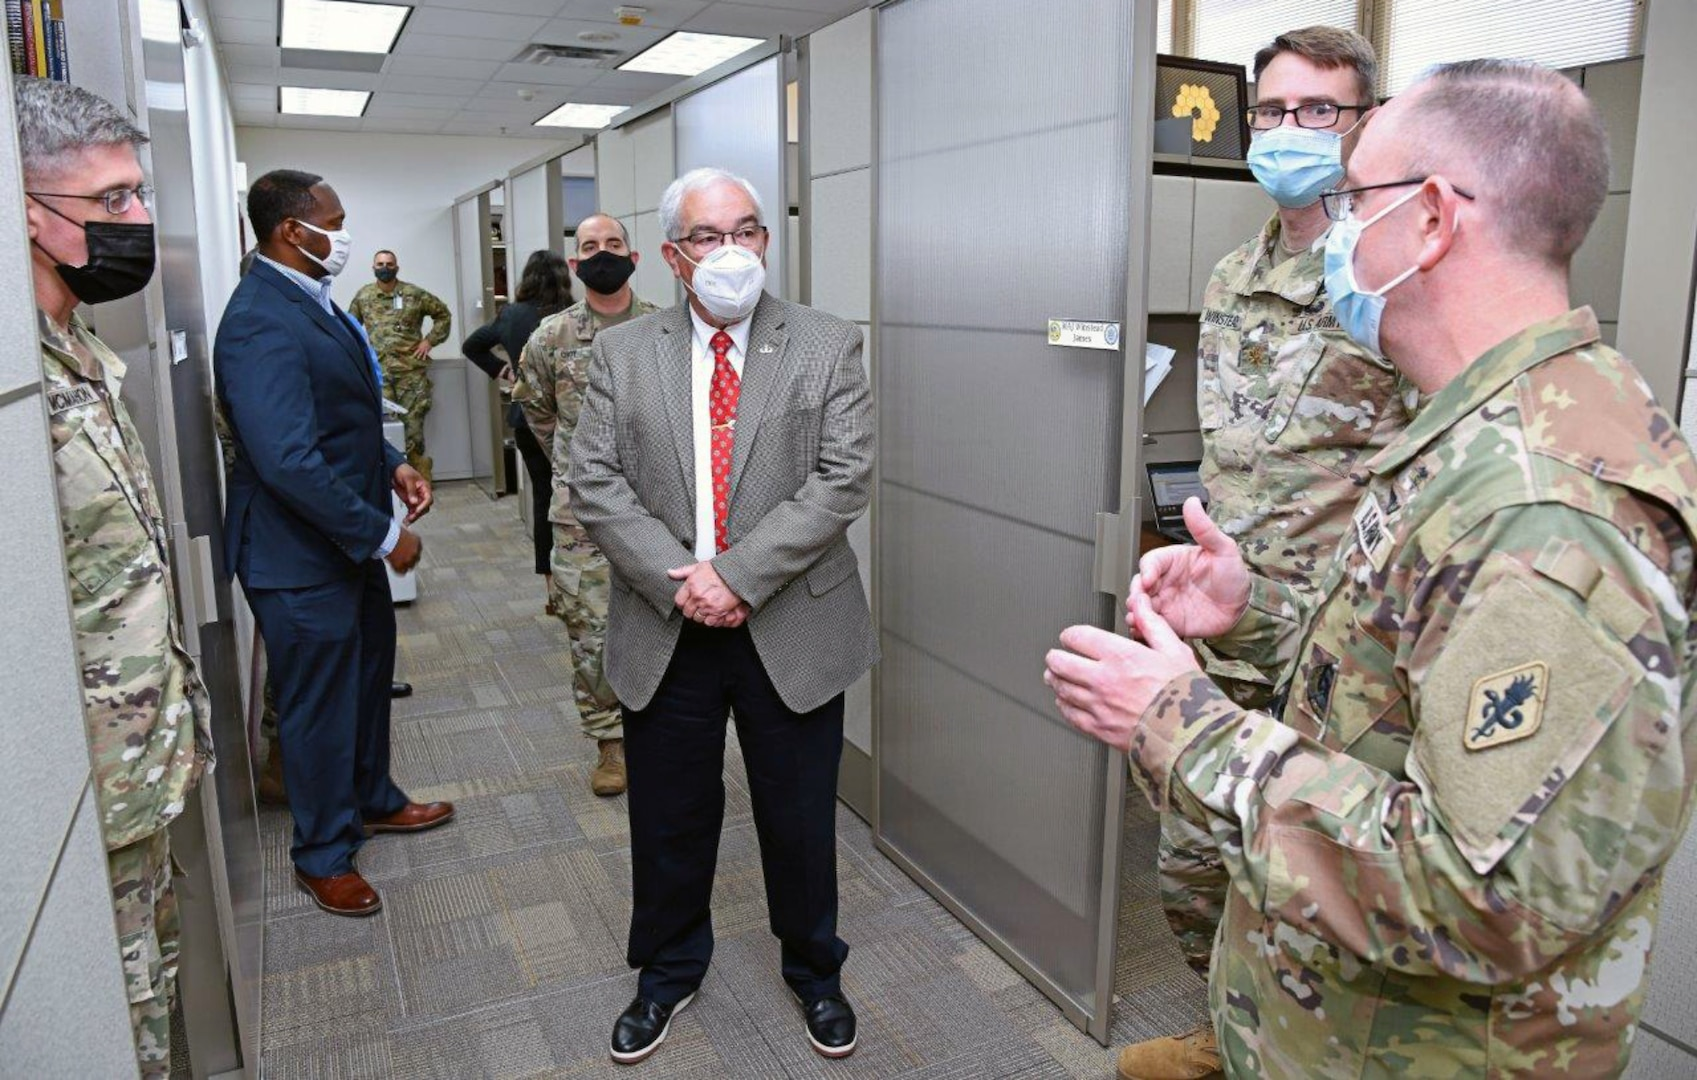 Col. James Jones (far right), Interservice Physician Assistant Program Associate professor, briefs J.M. Harmon III, deputy to the U.S. Army Medical Center of Excellence commanding general, on the renovations and new furniture to their program area.